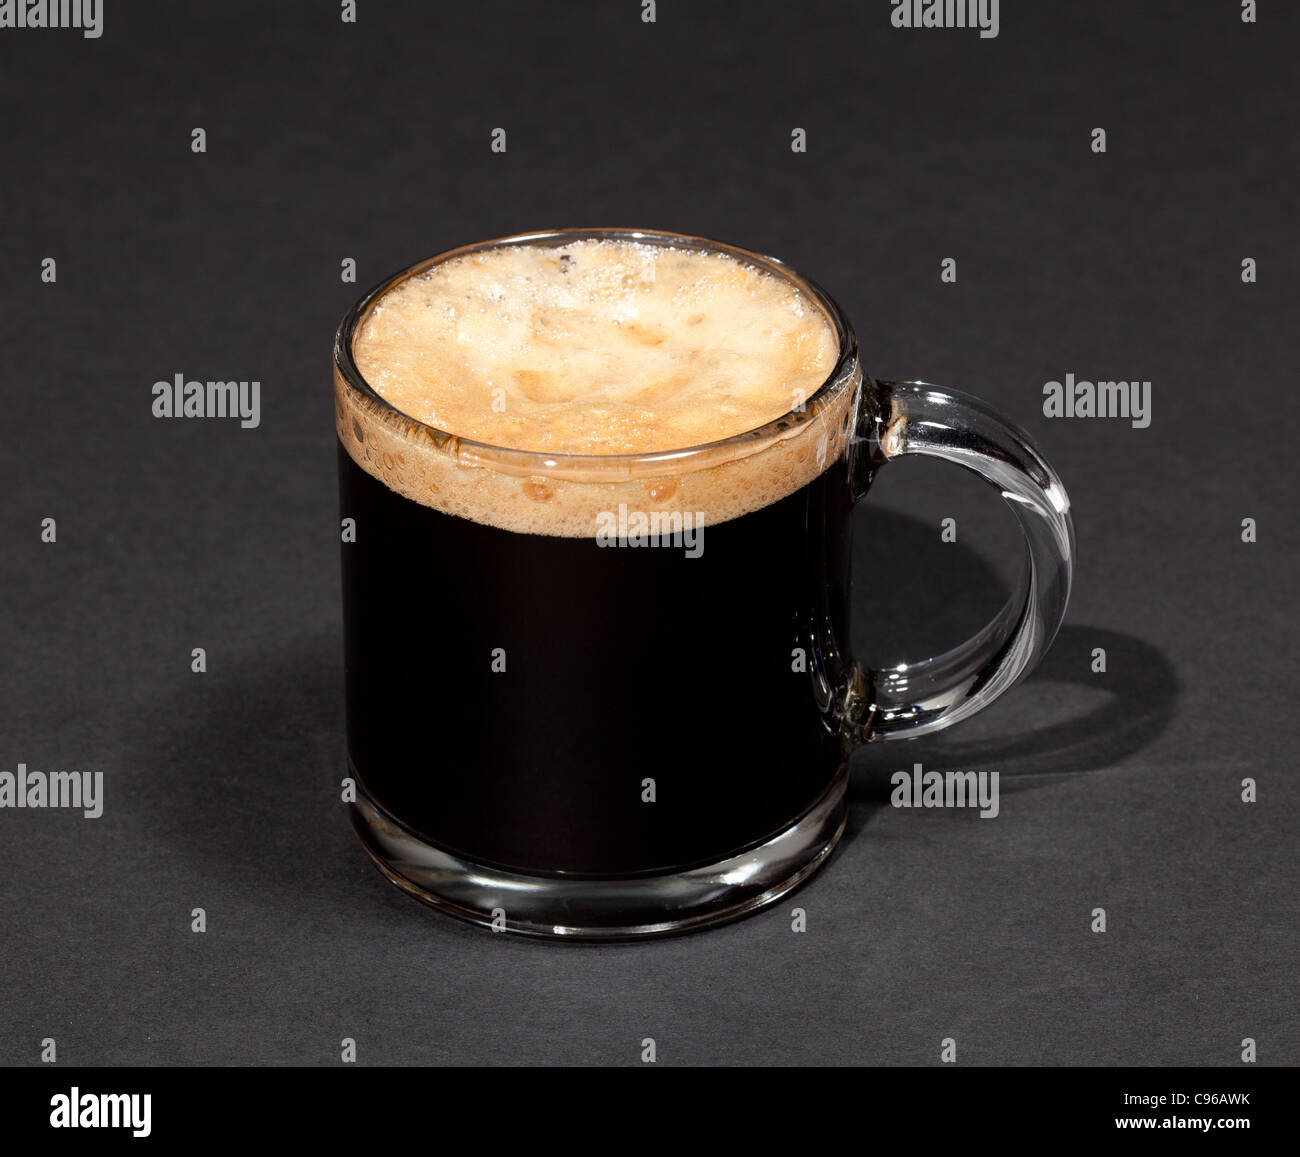 Black expresso coffee with heady froth in a glass mug or cup - Stock Image